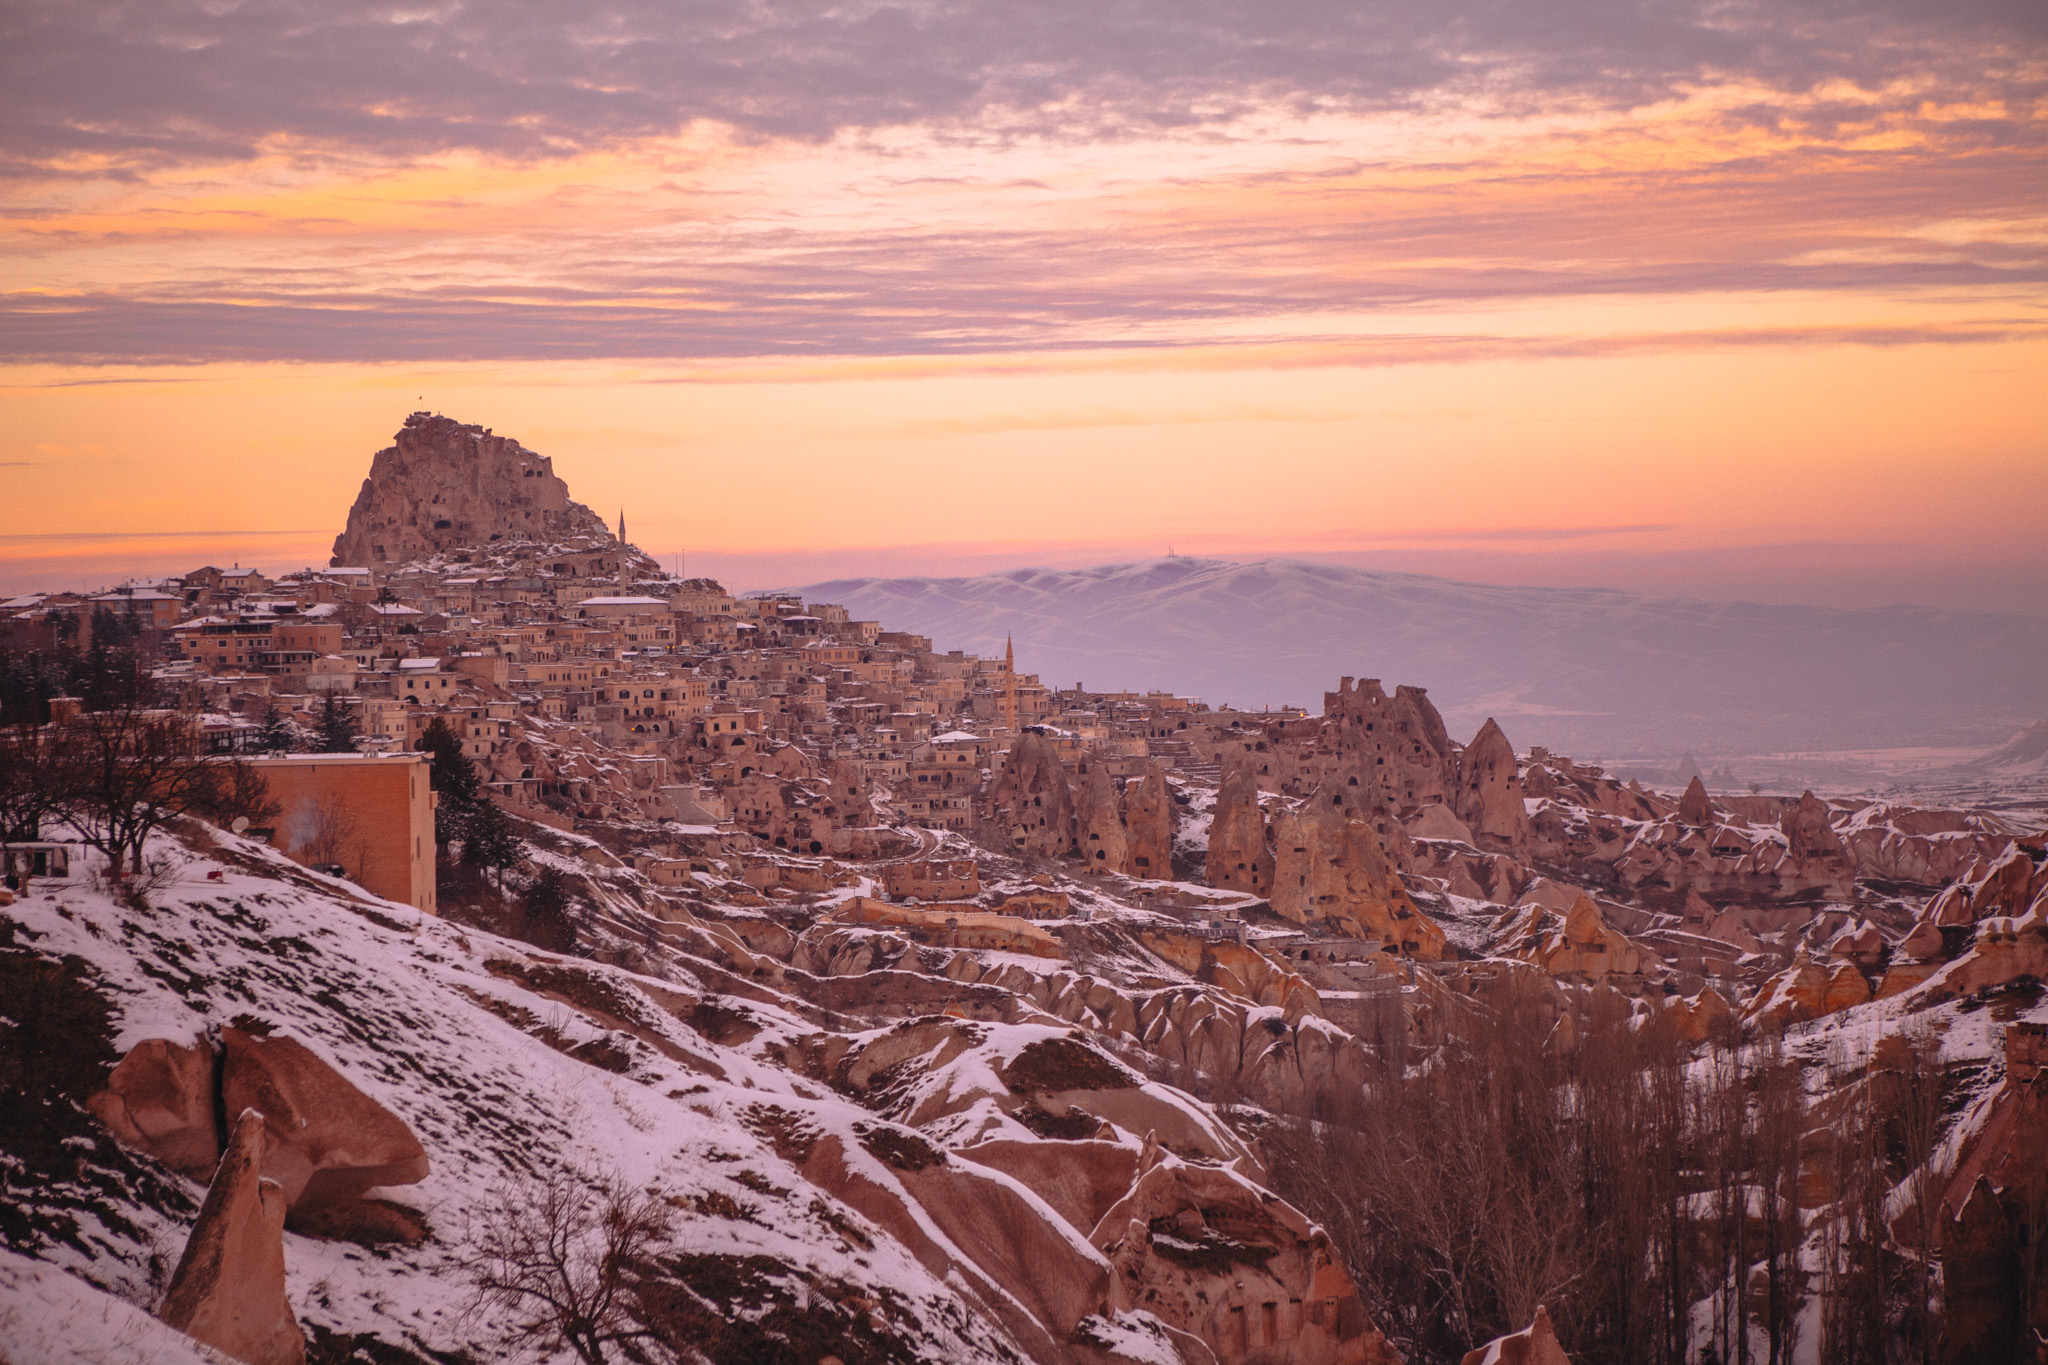 One of the most beautiful places in the world… Cappadocia